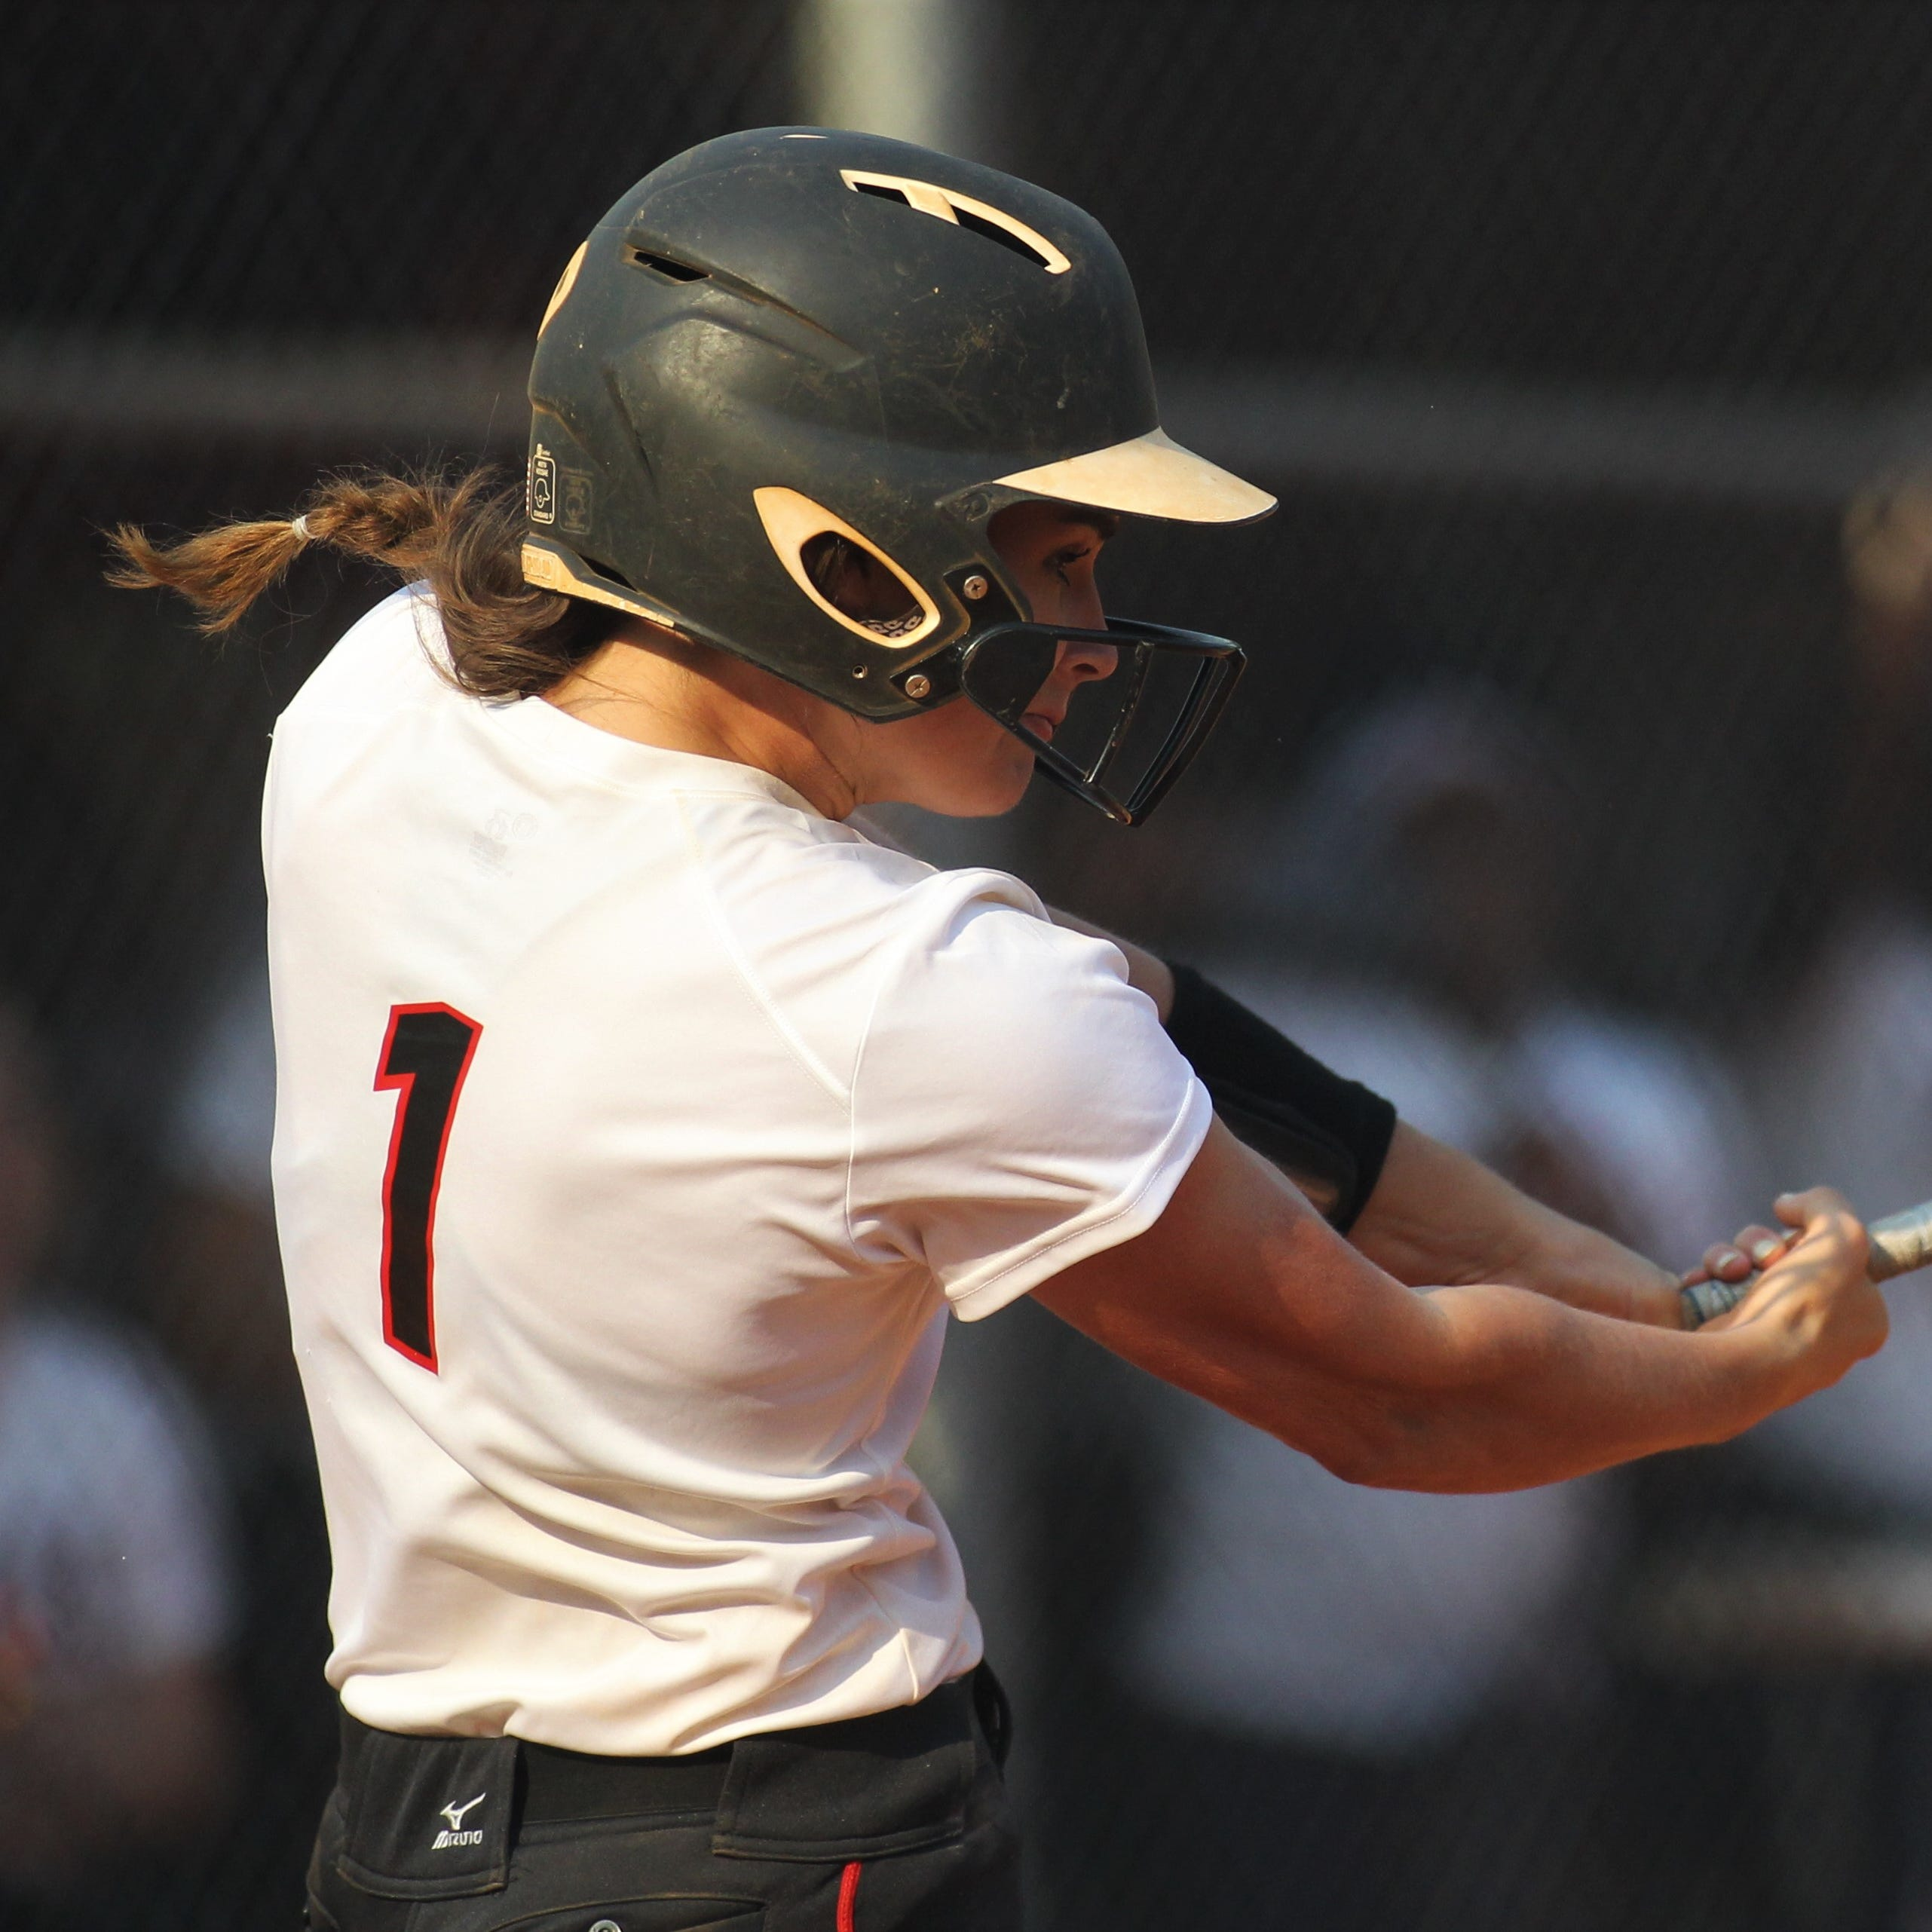 Playoff softball: Culp's 10th-inning home run sends NFC to regional finals